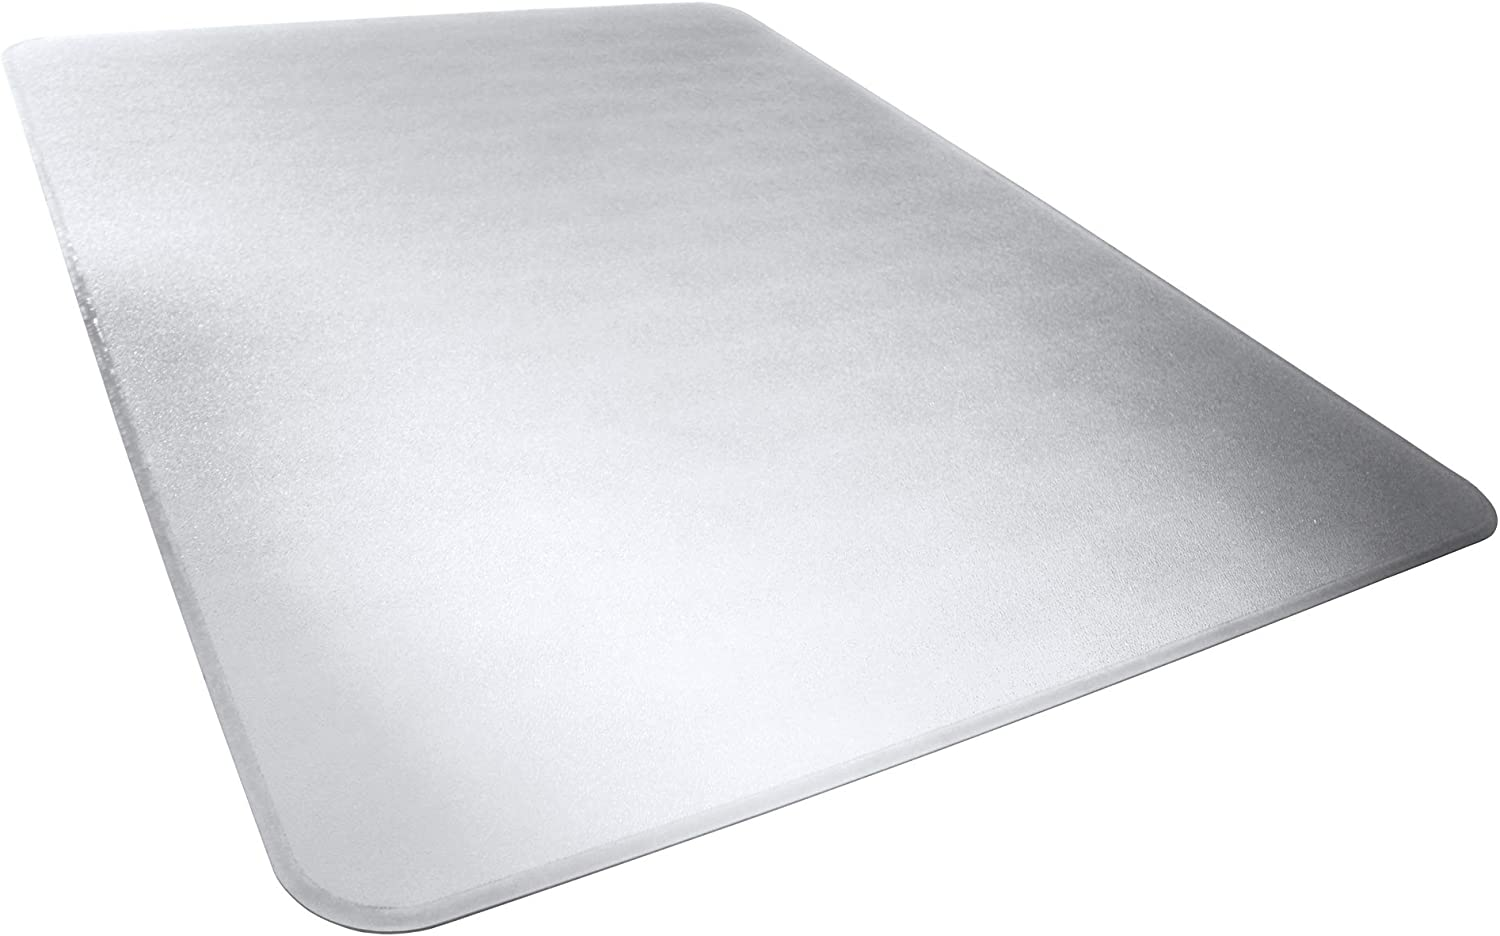 AmazonBasics Polycarbonate Heavy Duty Chair Mat for Carpets Hard Floors – 35 x 47